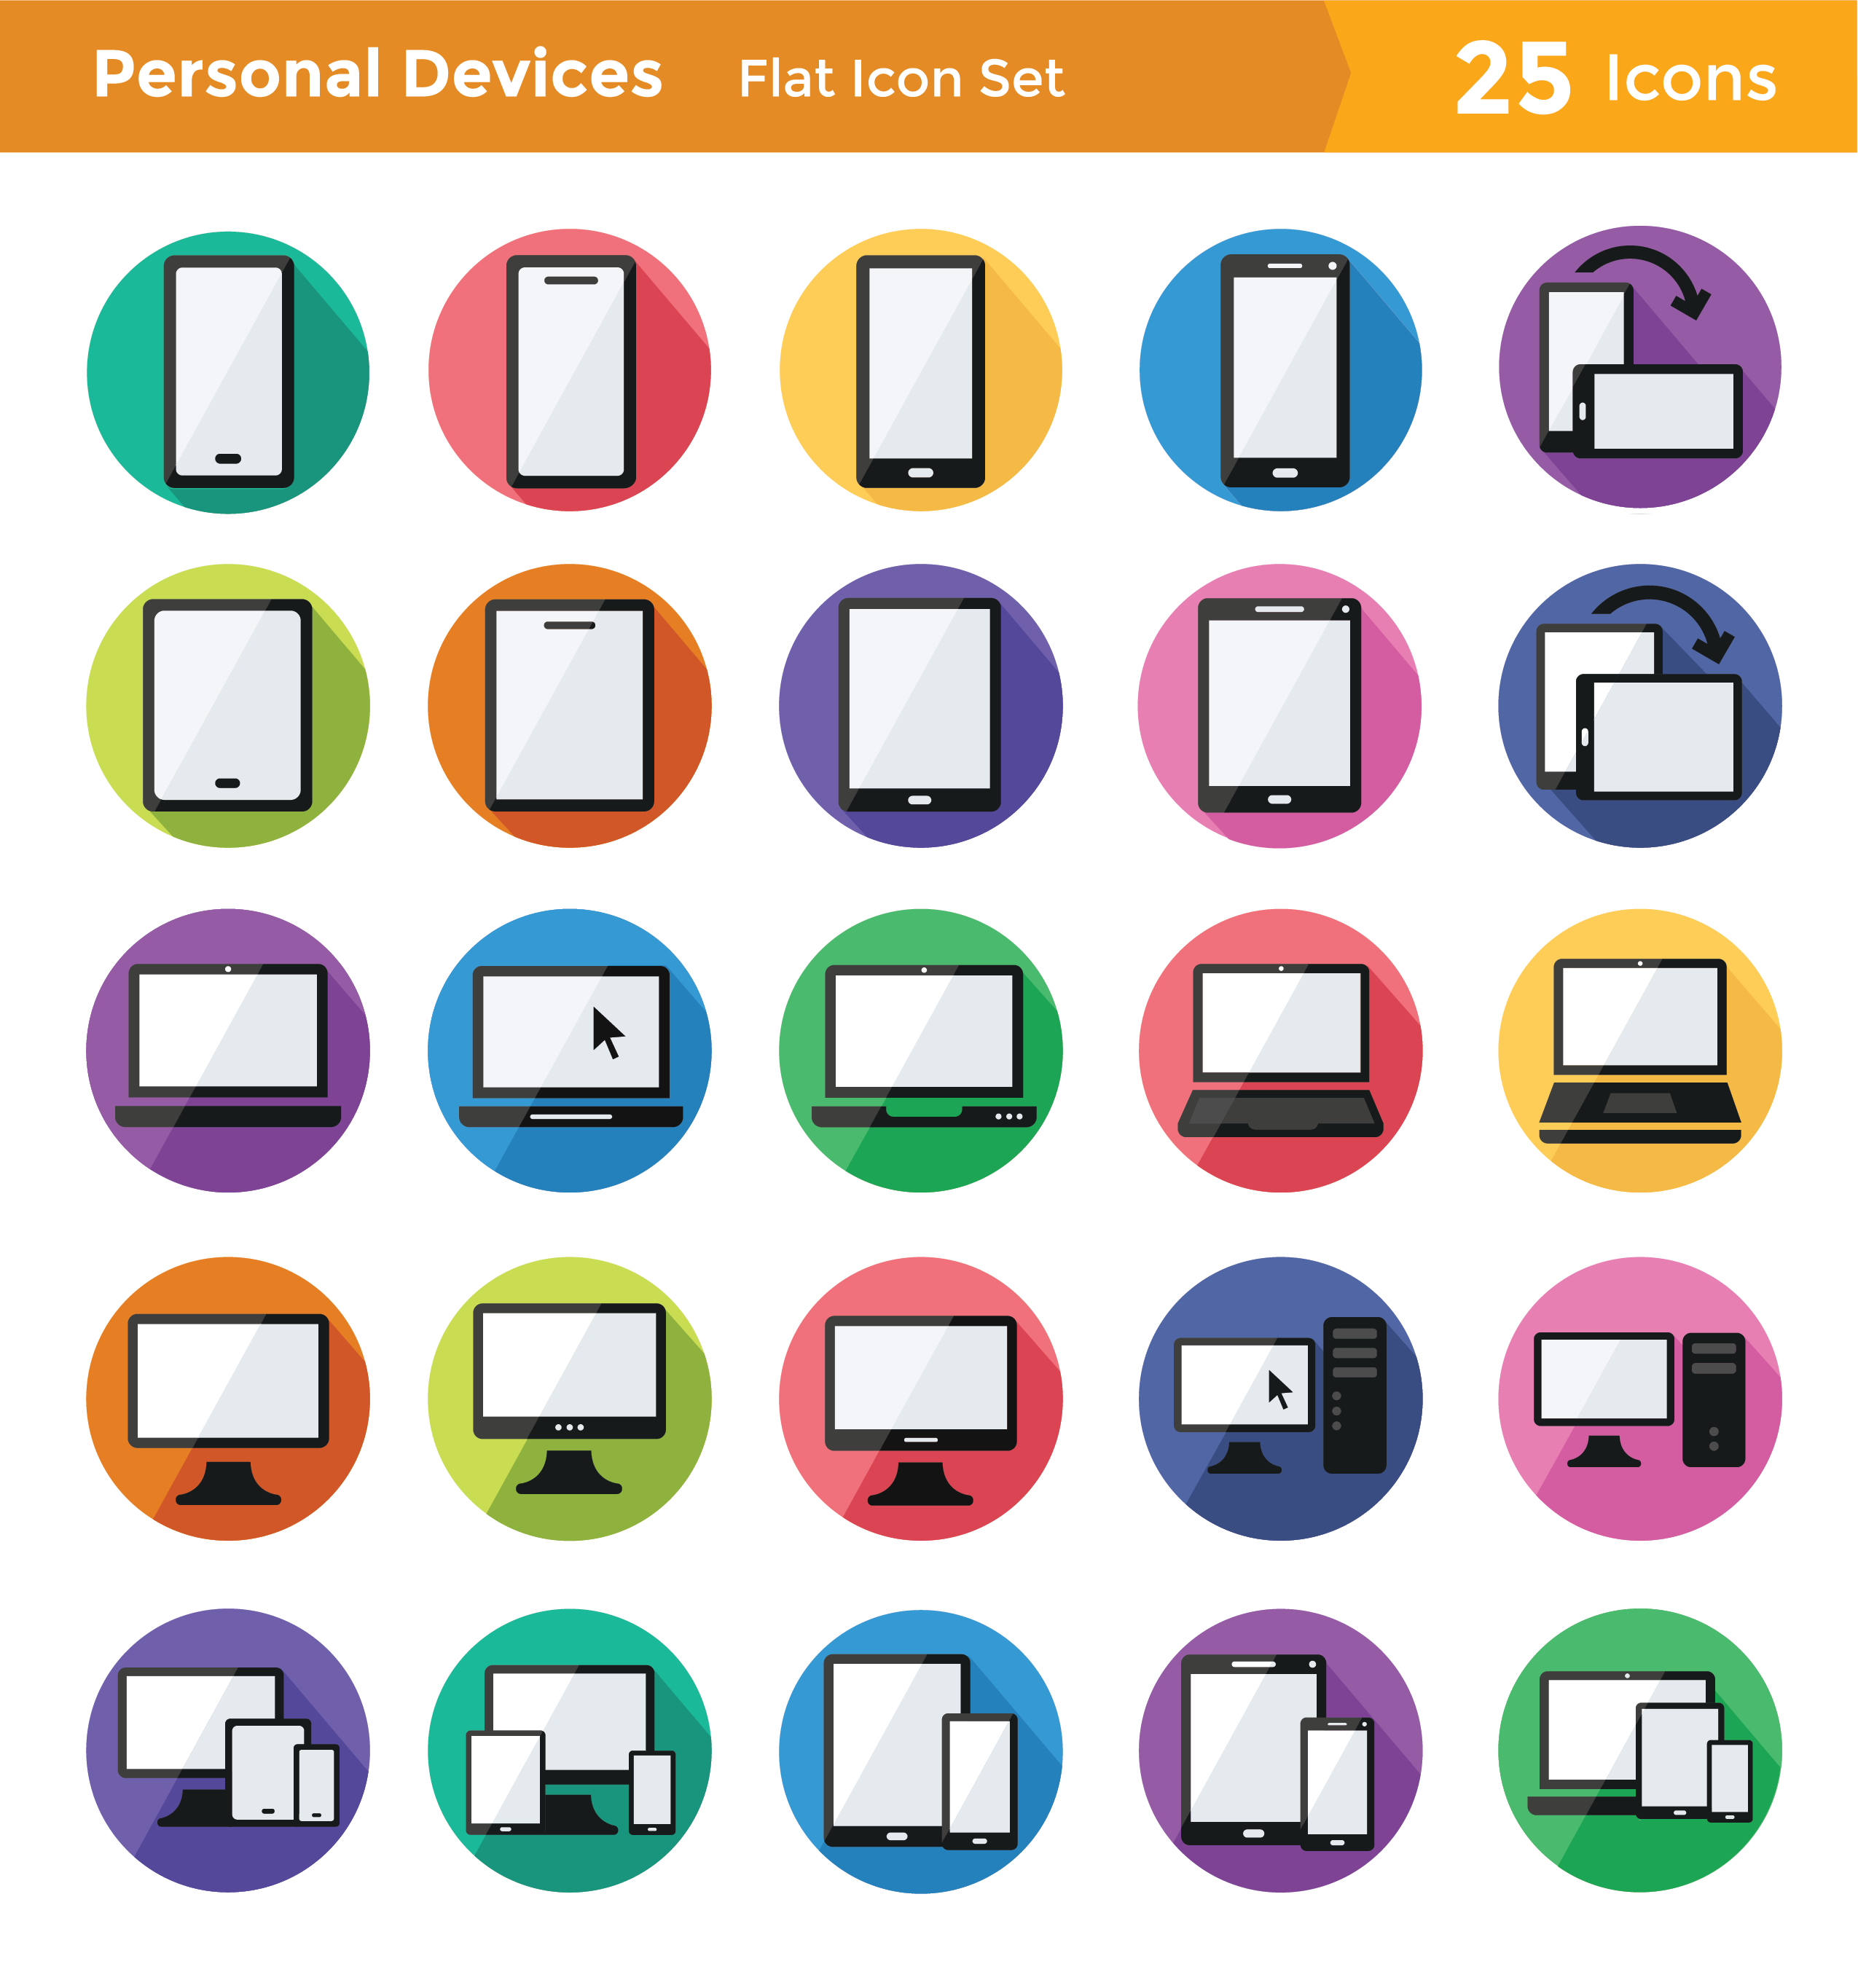 Personal Devices Icon Set: Flat